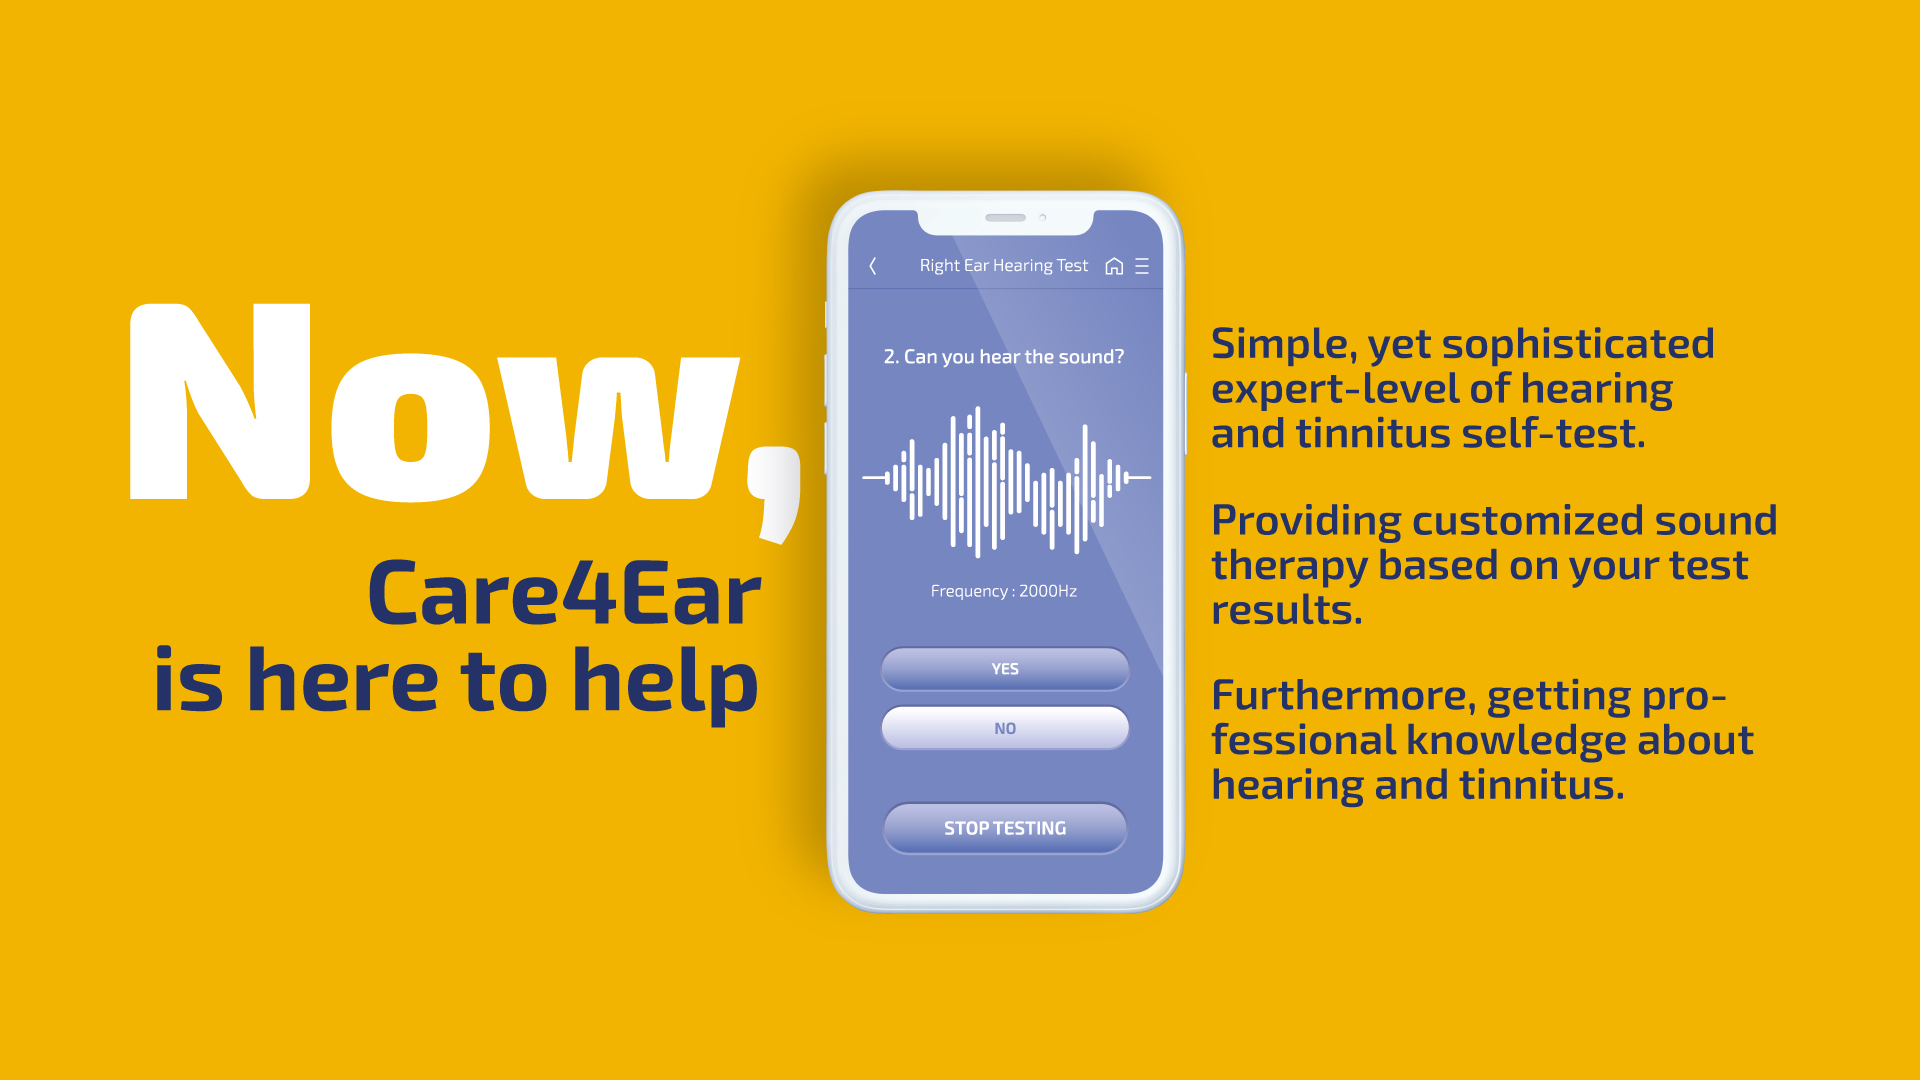 If you suspect yourself you may have tinnitus, care your ear with CARE4EAR